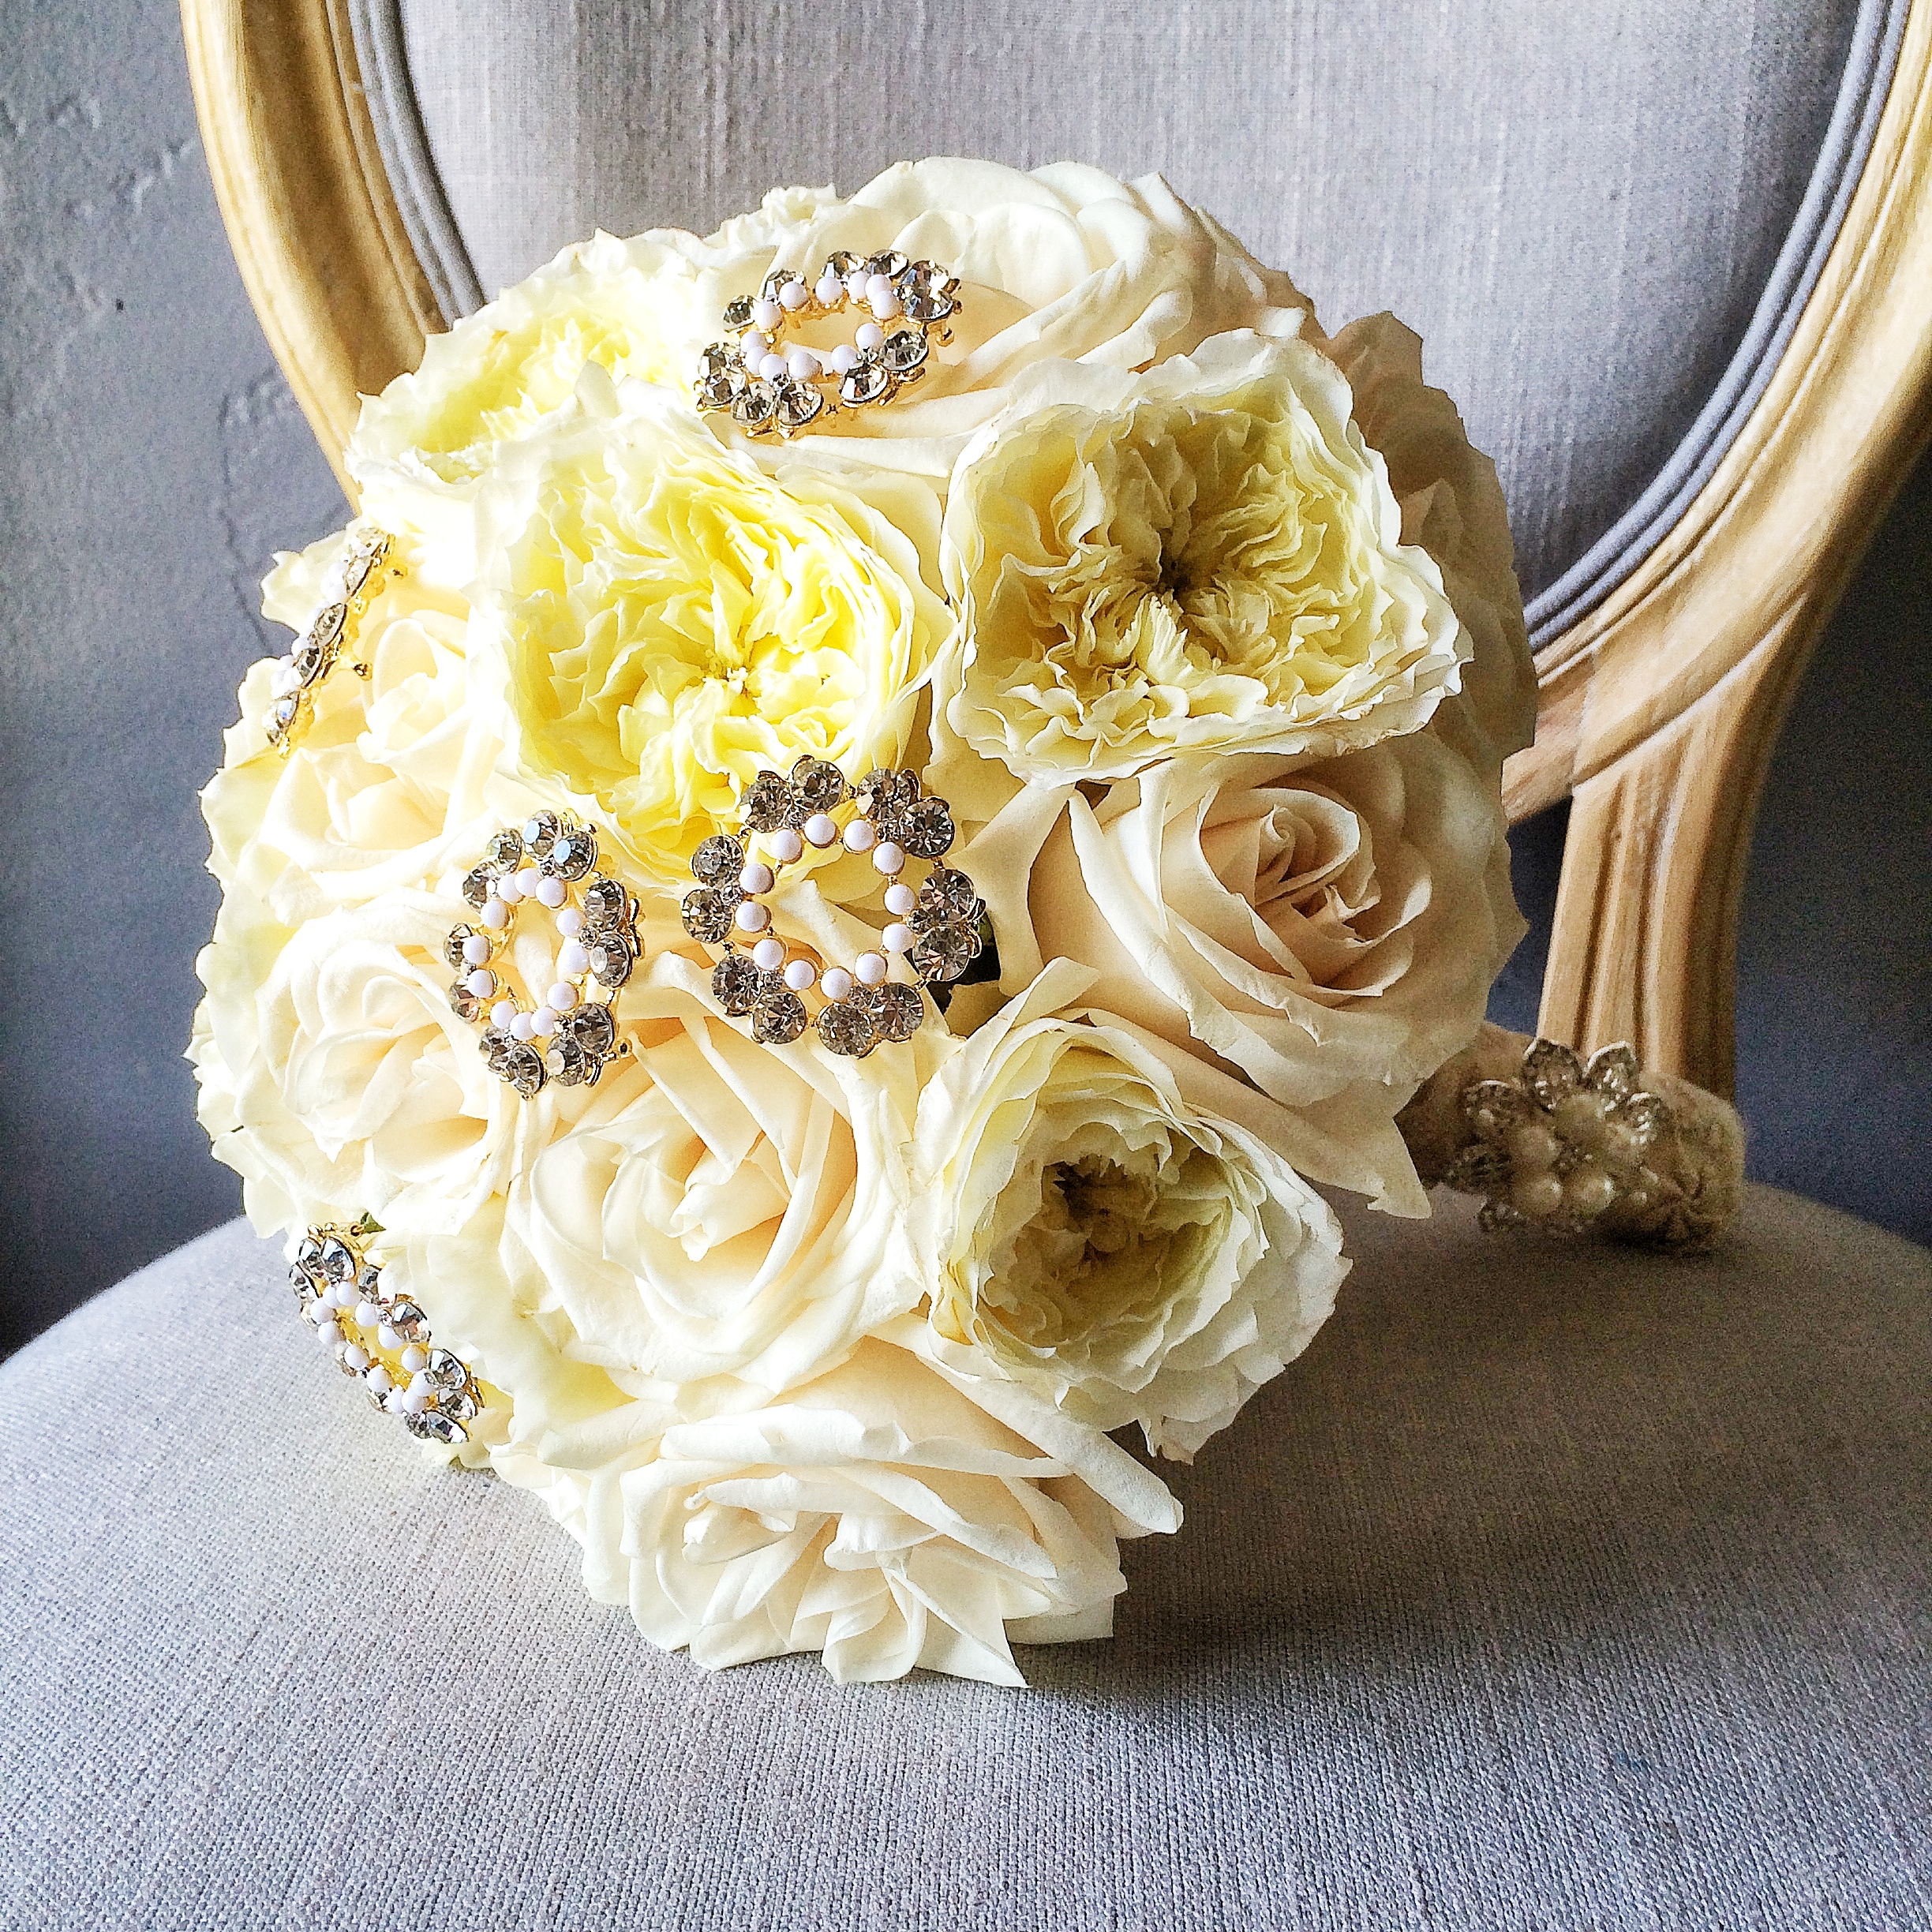 Garden rose bridal bouquet.JPG